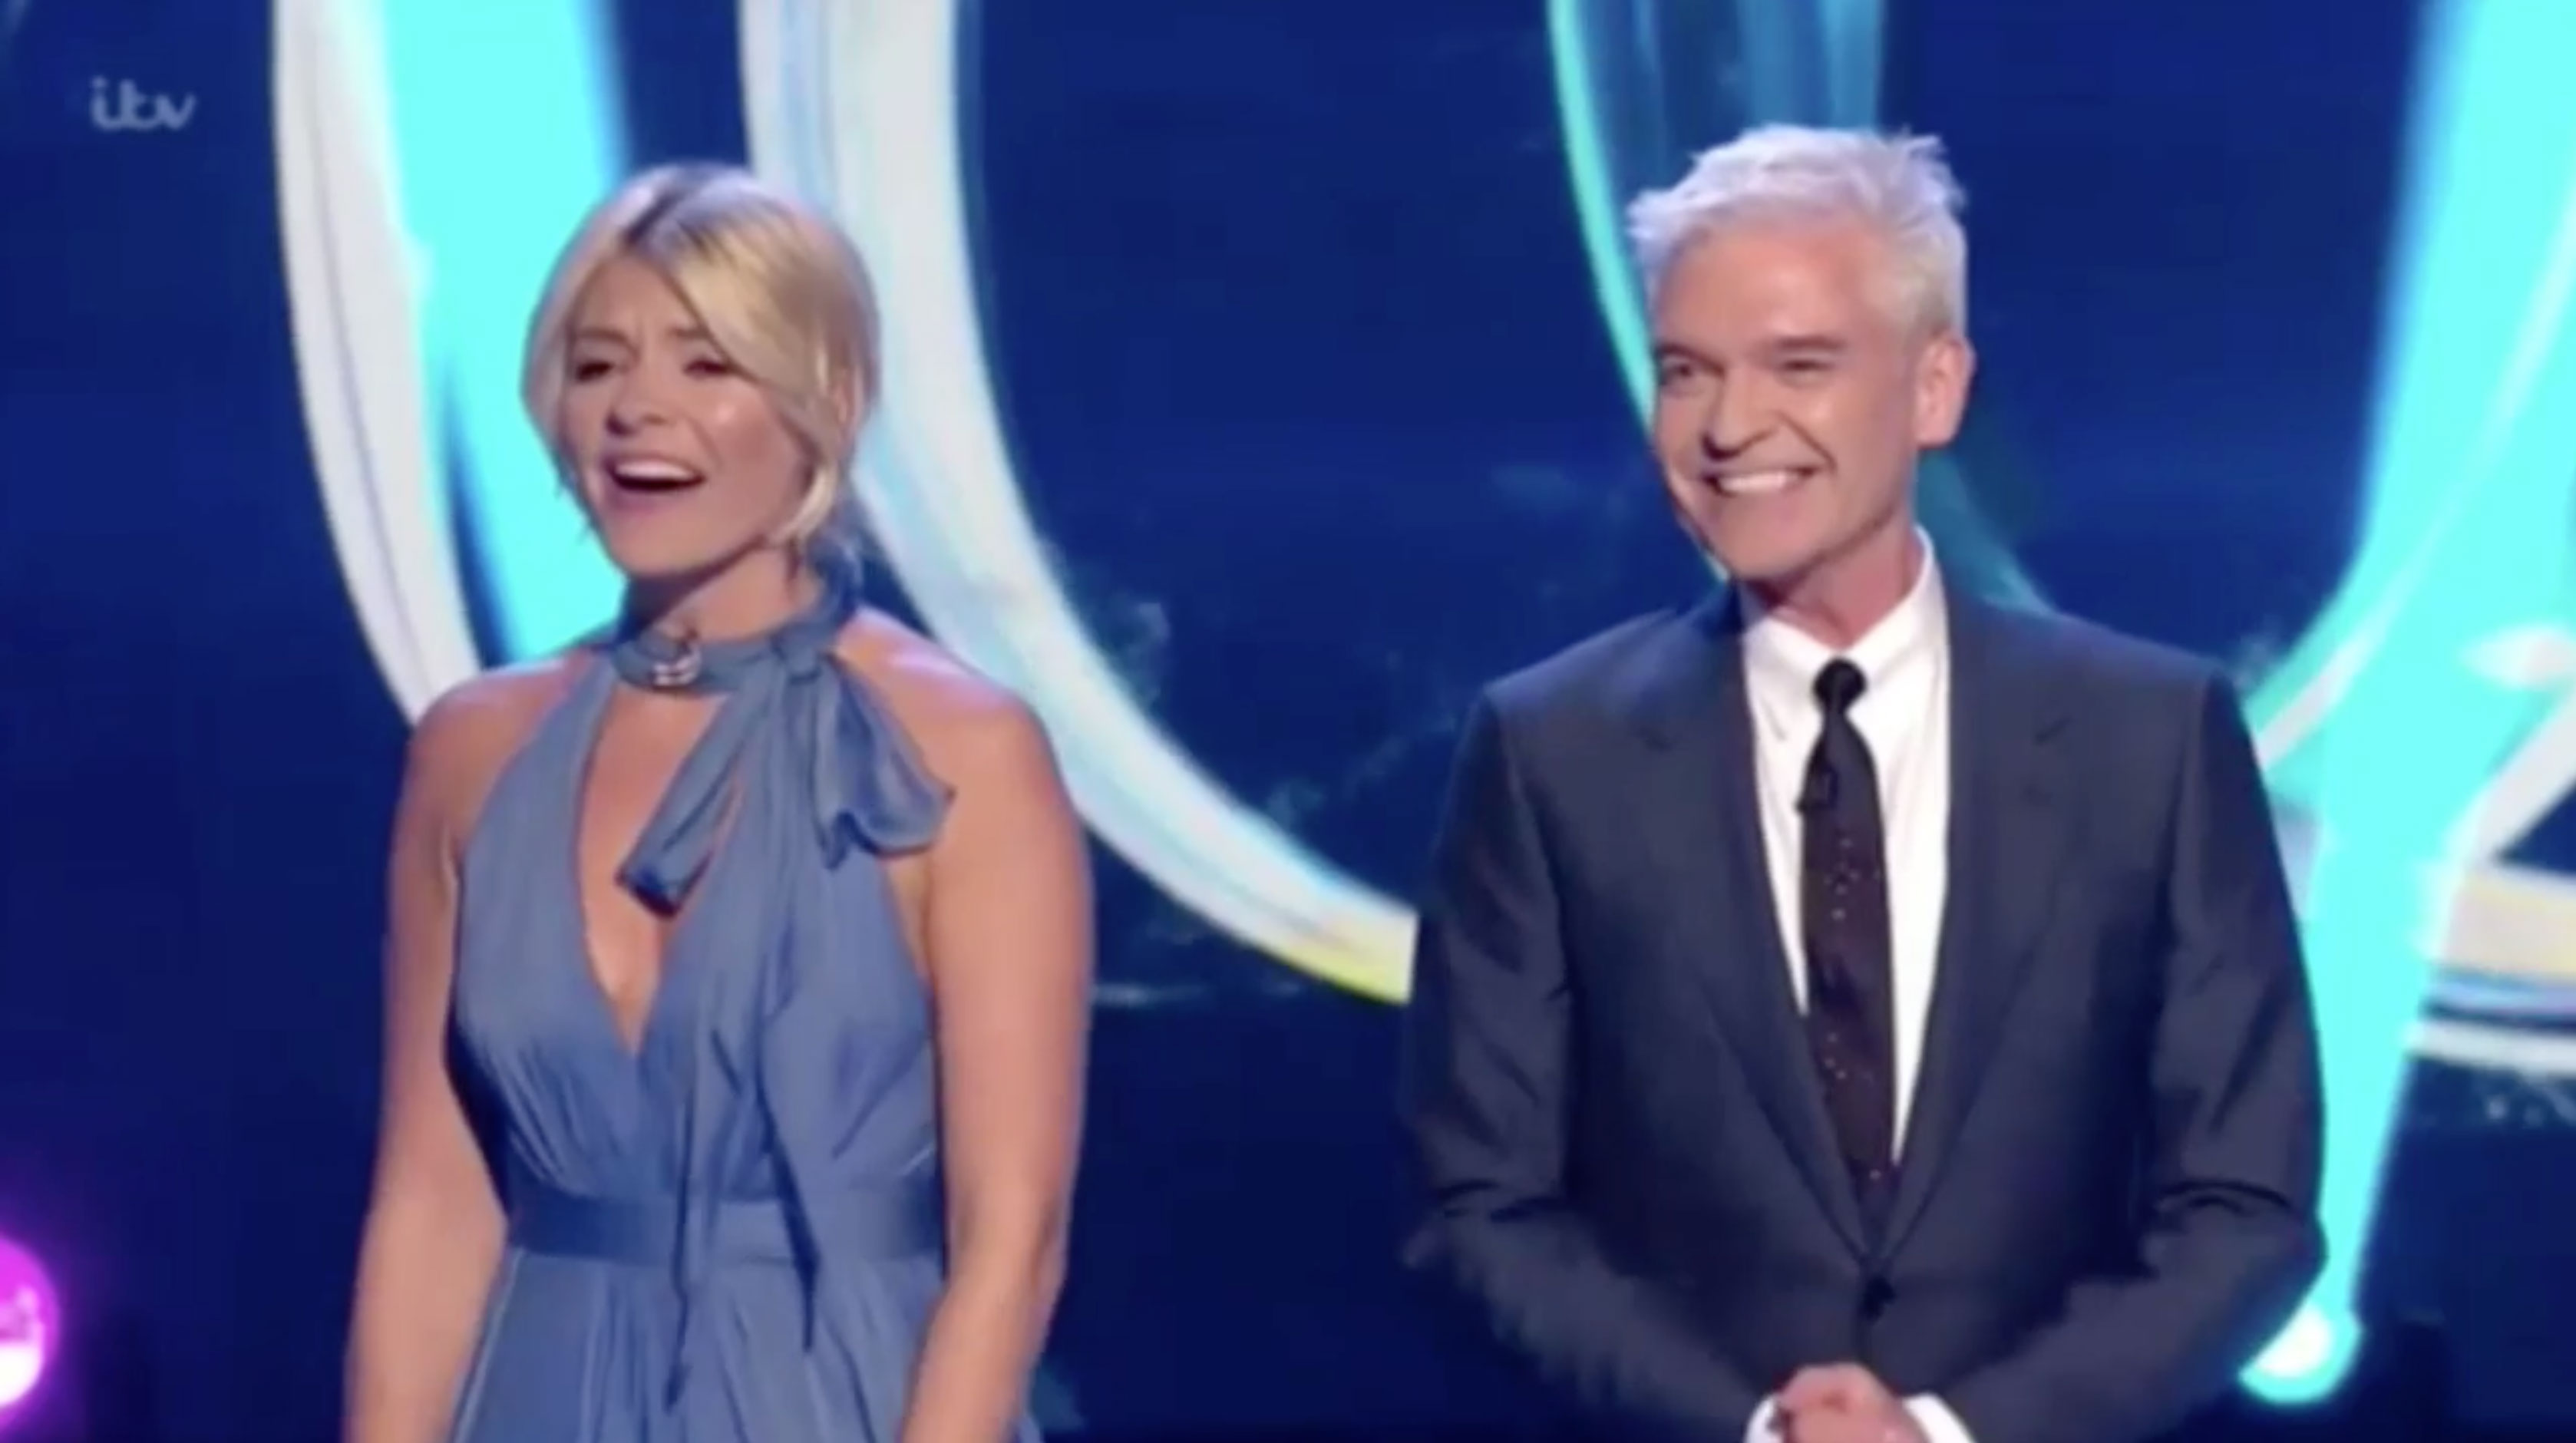 Holly Willoughby almost turns the air blue on live TV